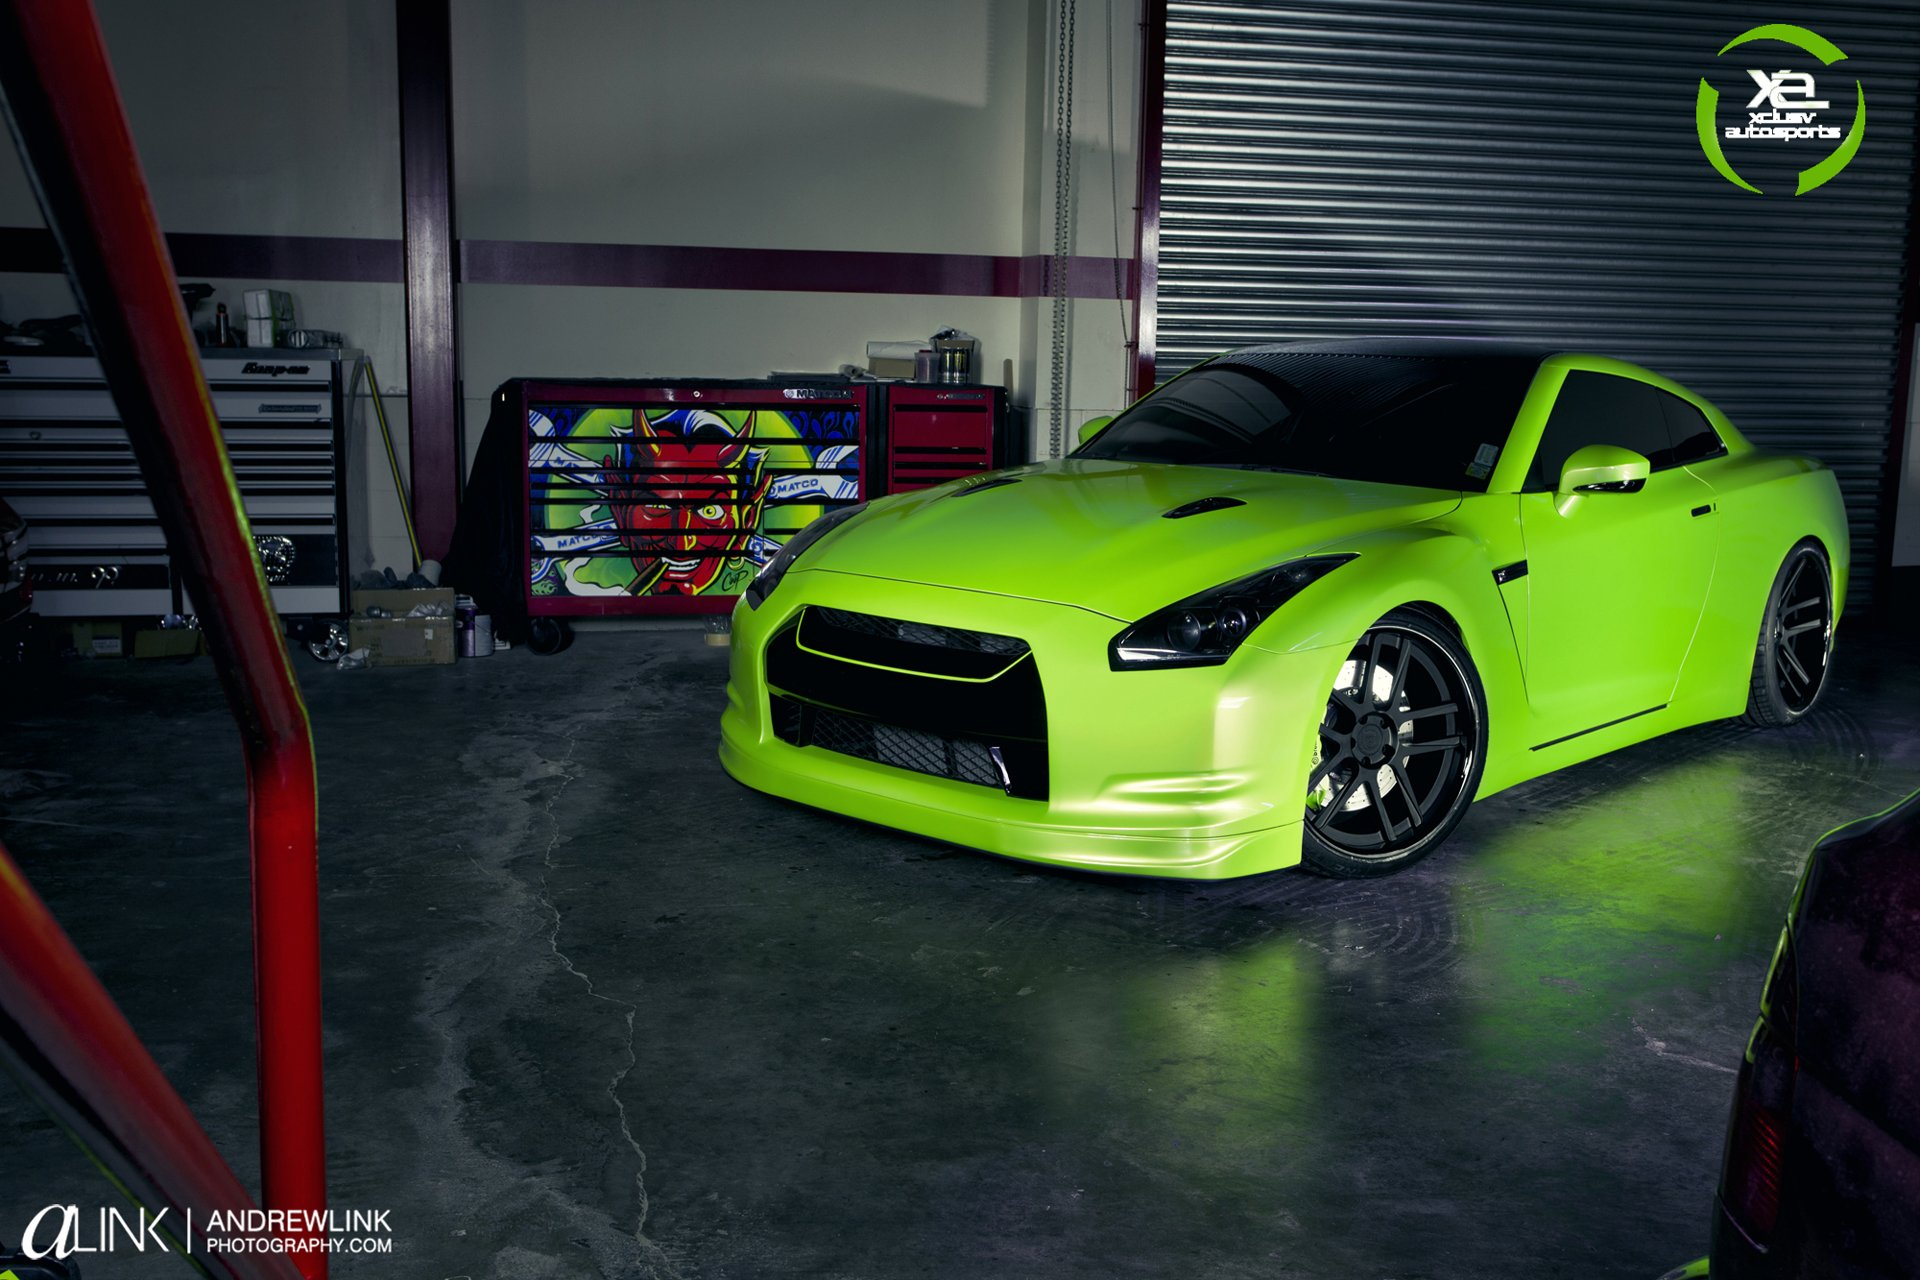 Dope Wallpaper Super Cars Gt R Nismo Nissan R35 Tuning Supercar Coupe Japan Cars